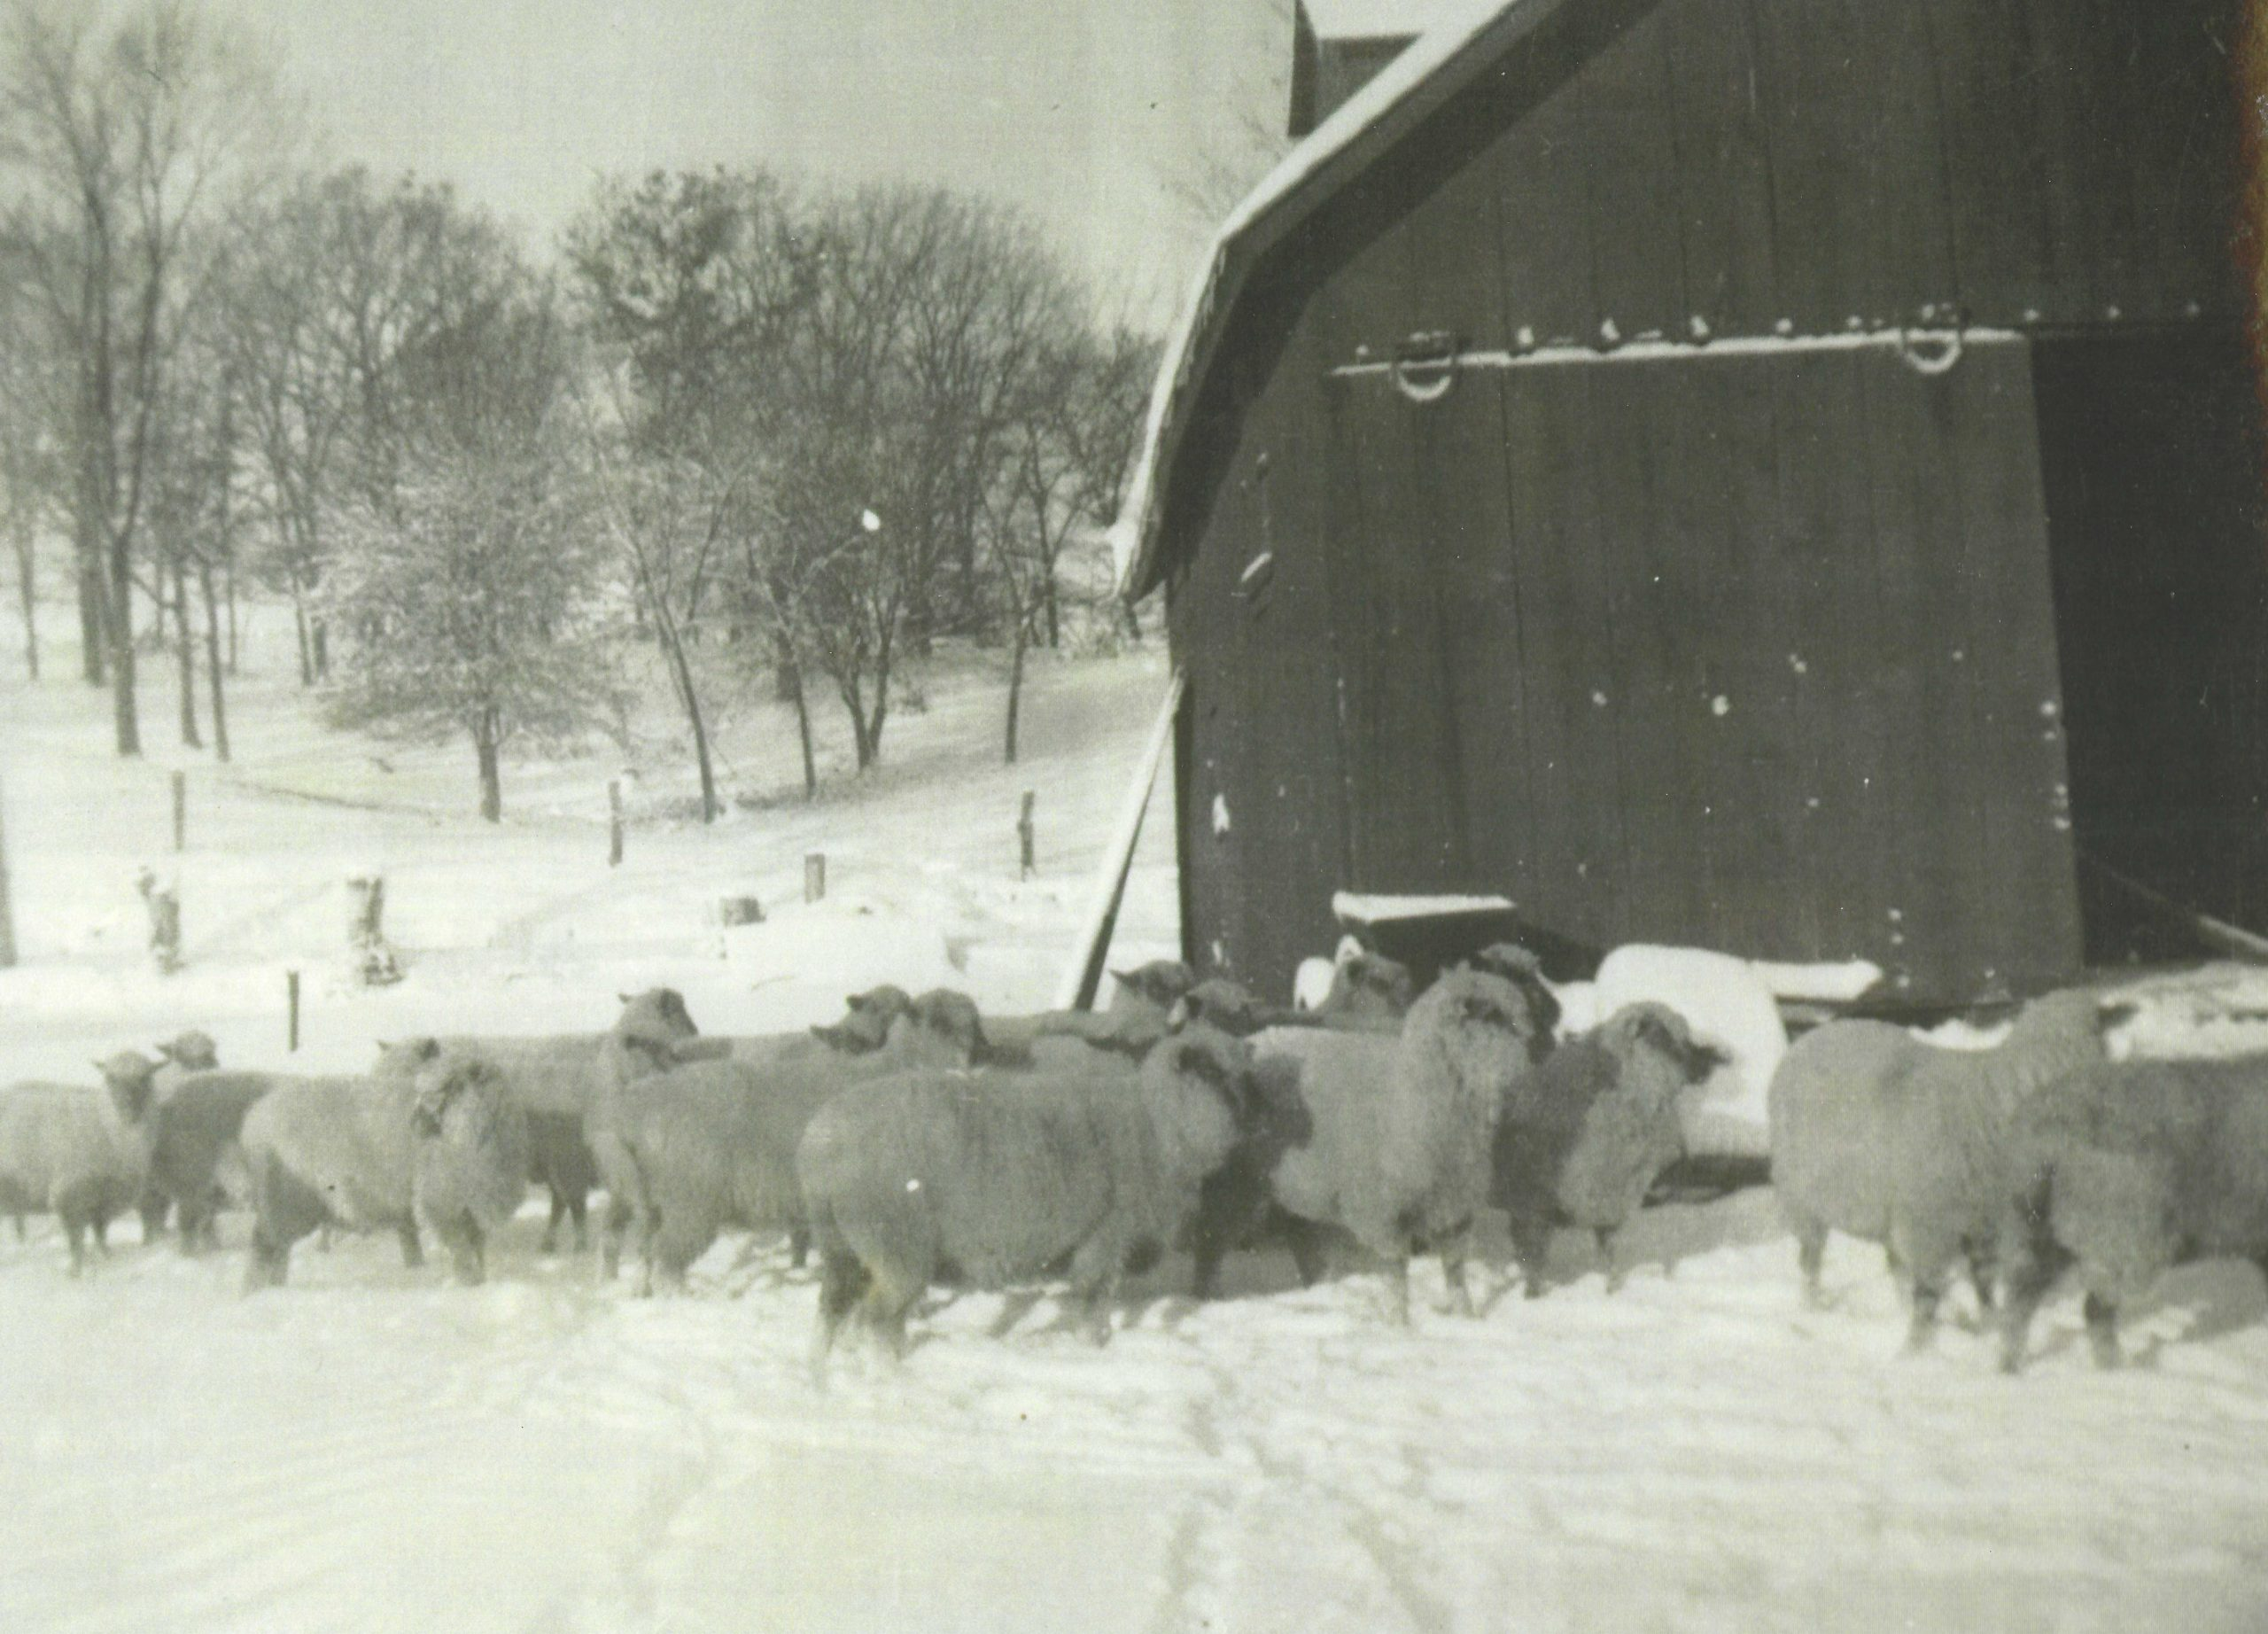 Photo of sheep in the winter